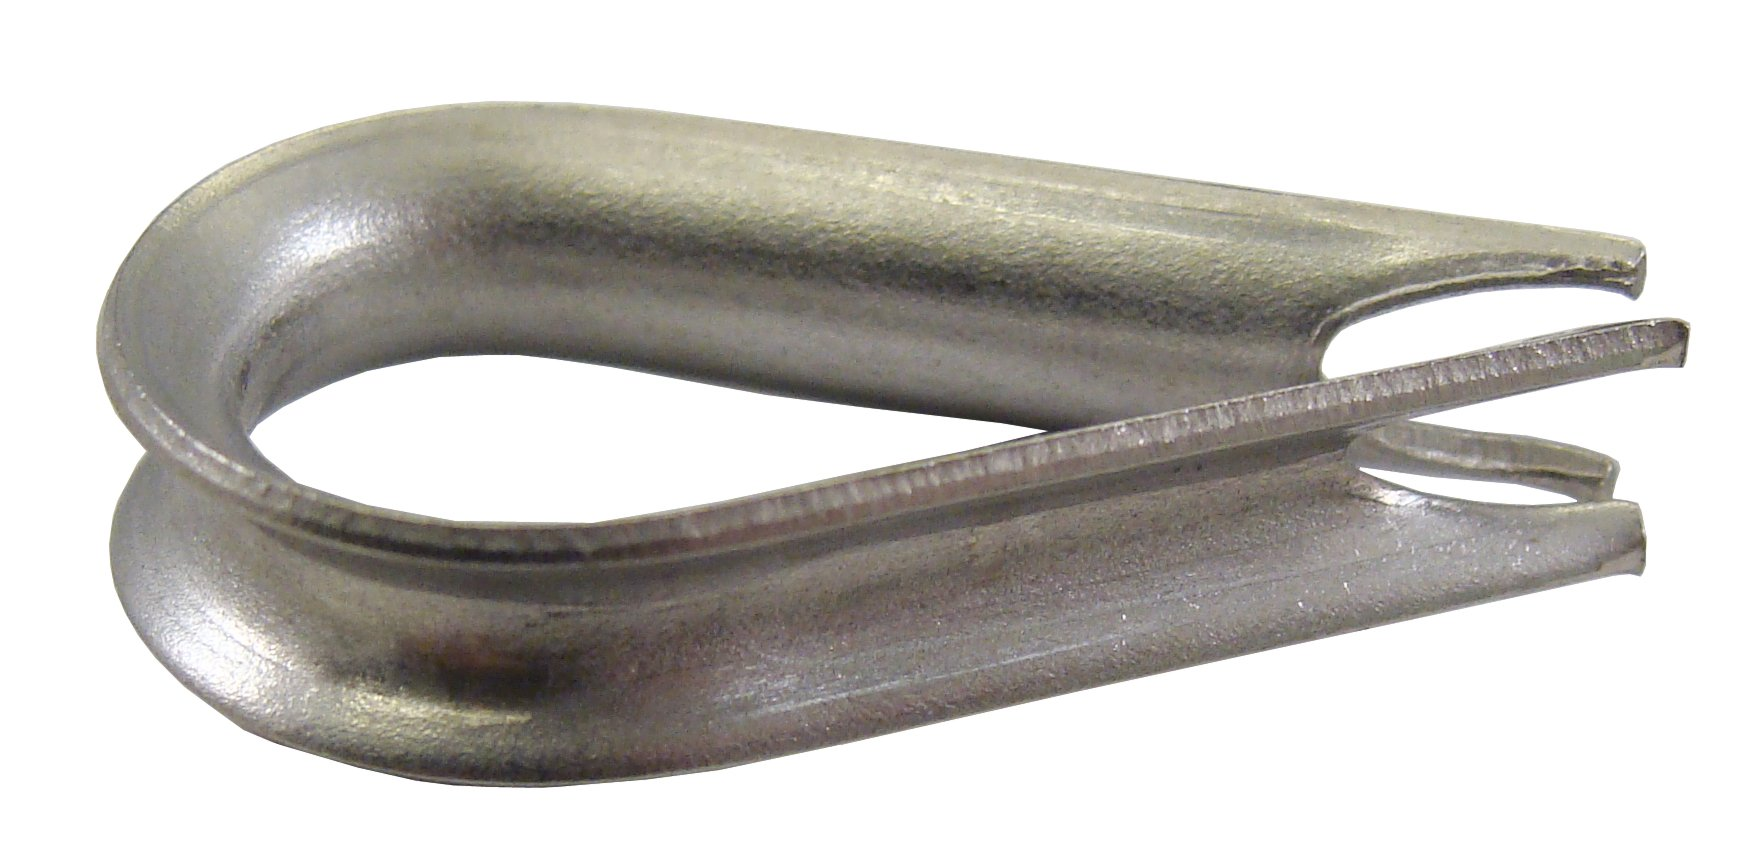 """Loos Cableware AN100-C4 Stainless Steel Thimble for 3/32"""" and 1/8"""" Diameter Wire Rope"""